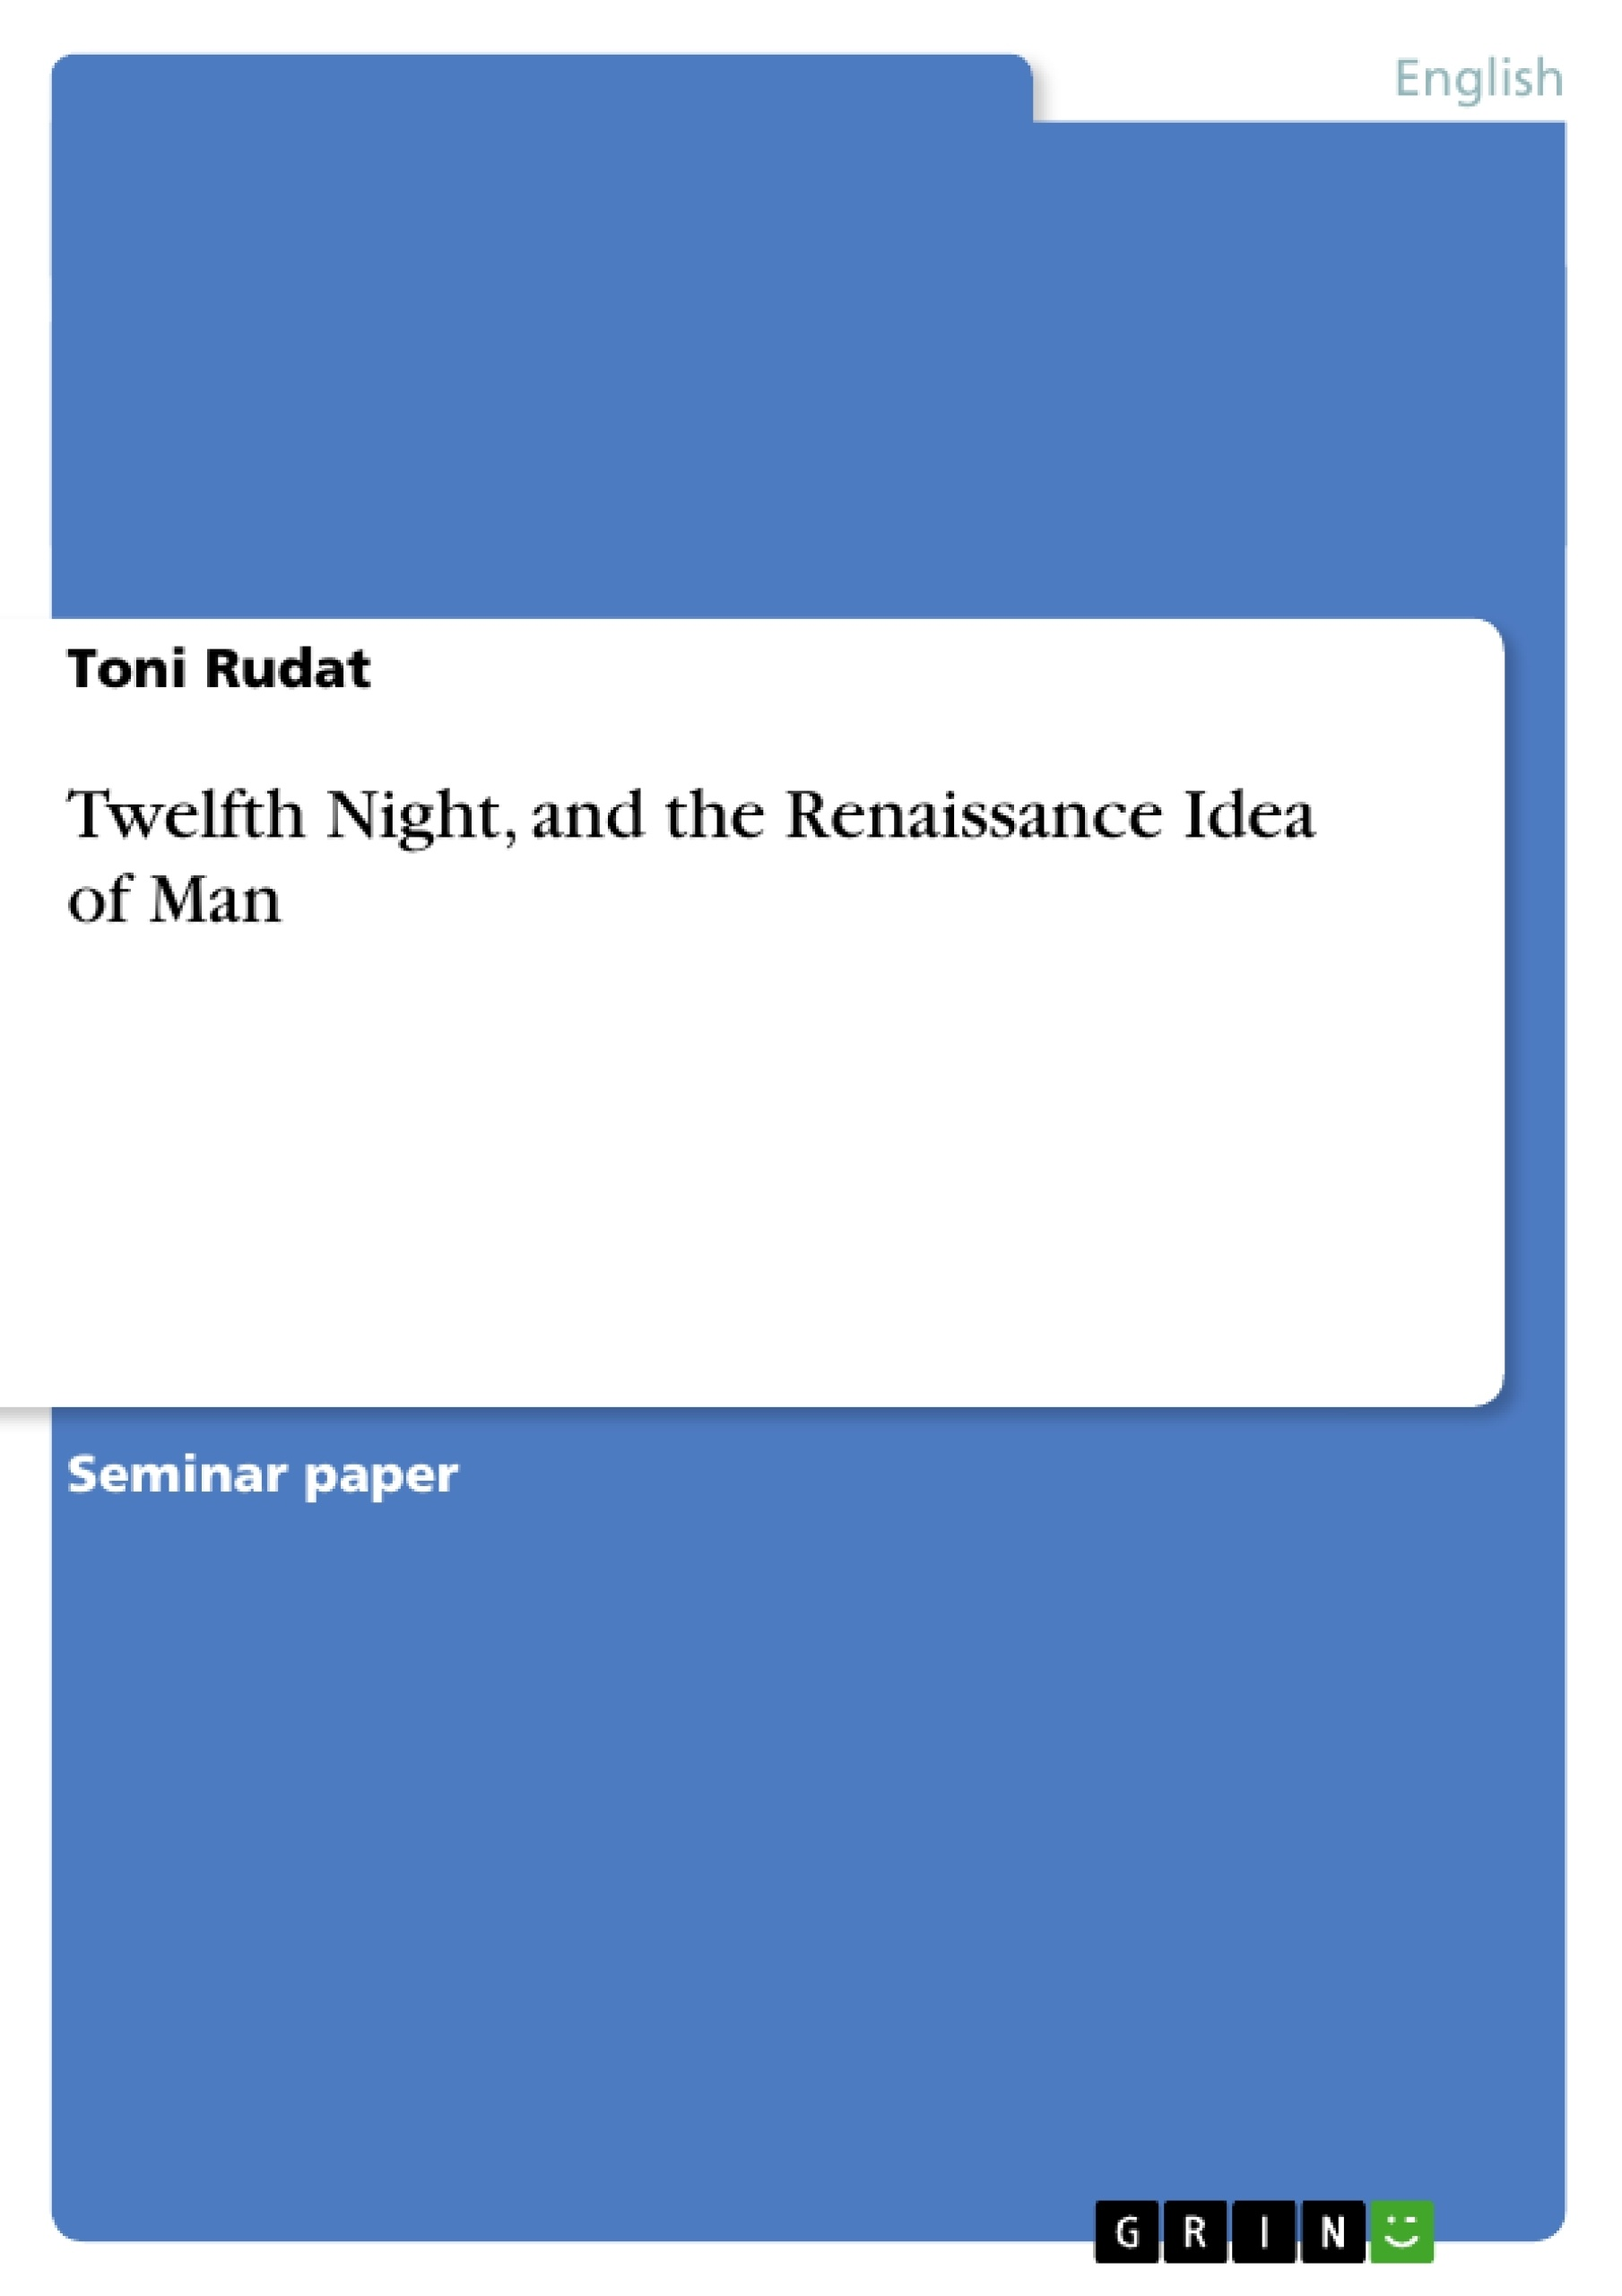 twelfth night essays twelfth night and the renaissance idea of man  twelfth night and the renaissance idea of man publish your twelfth night and the renaissance idea